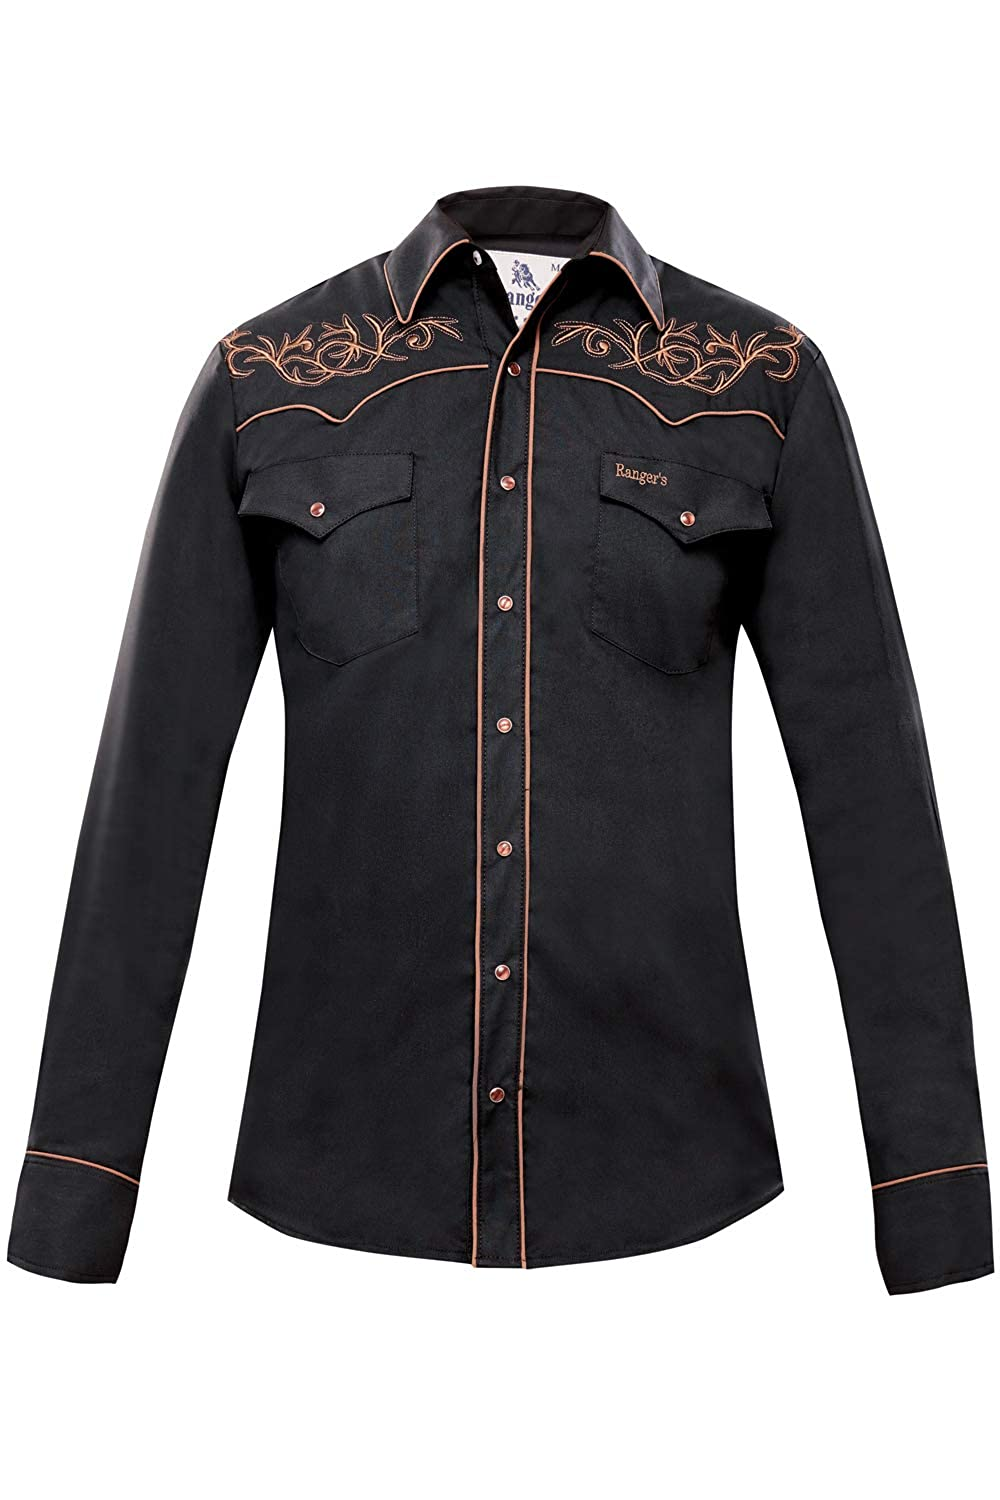 09383b2d5d8 Ranger s Western Shirt - Toro Bravo 013CA01 at Amazon Men s Clothing store